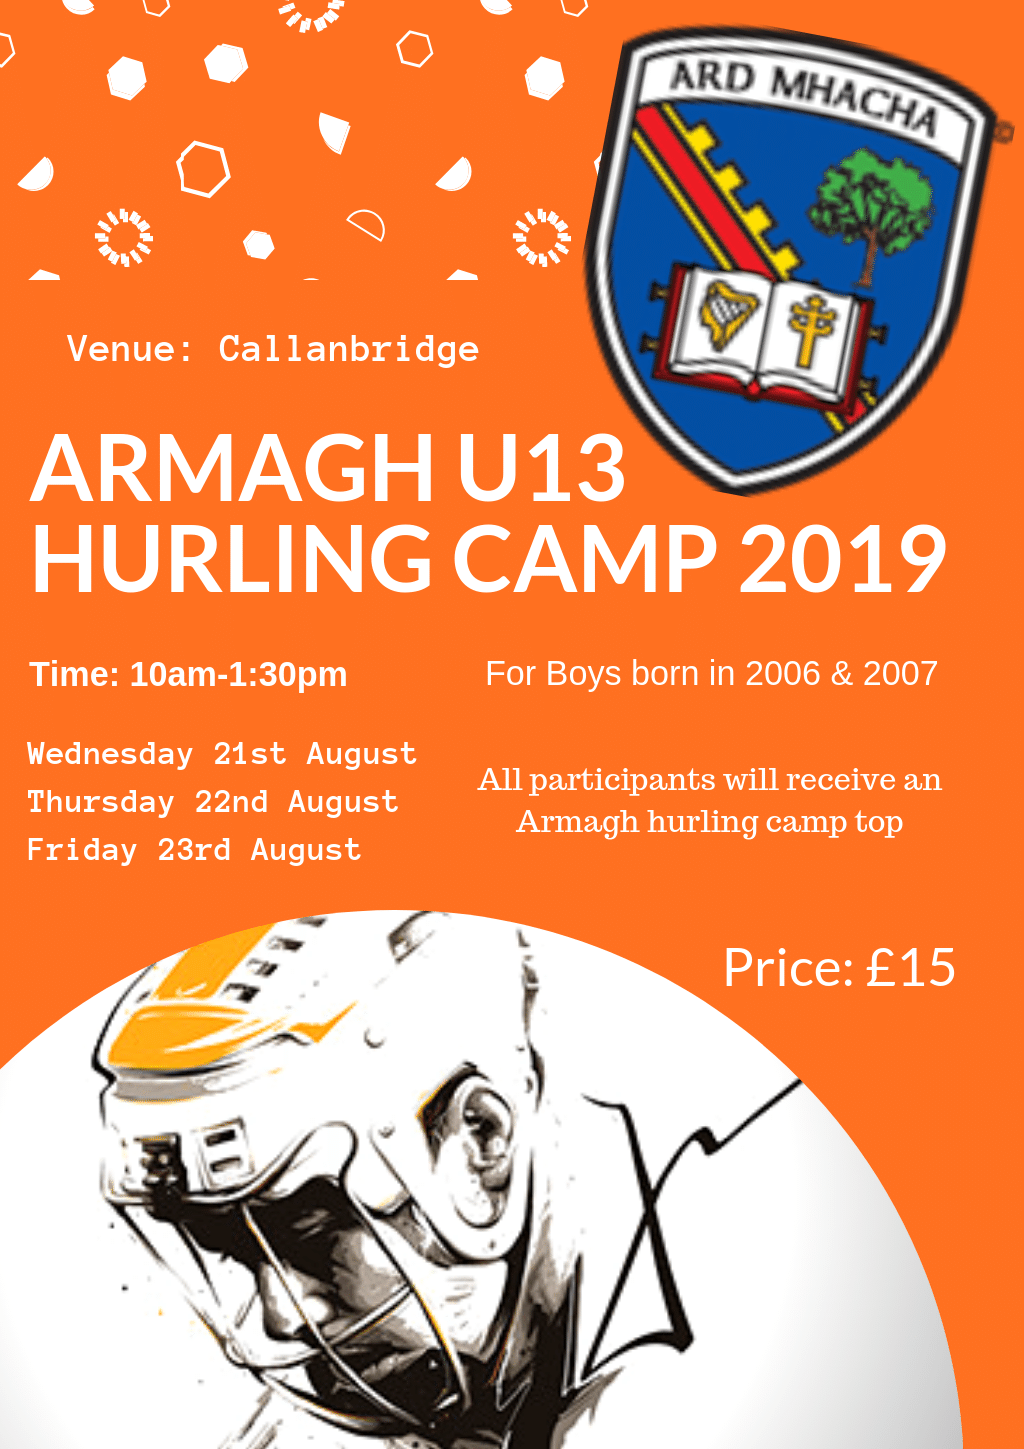 Armagh U13 Hurling Camp 2019